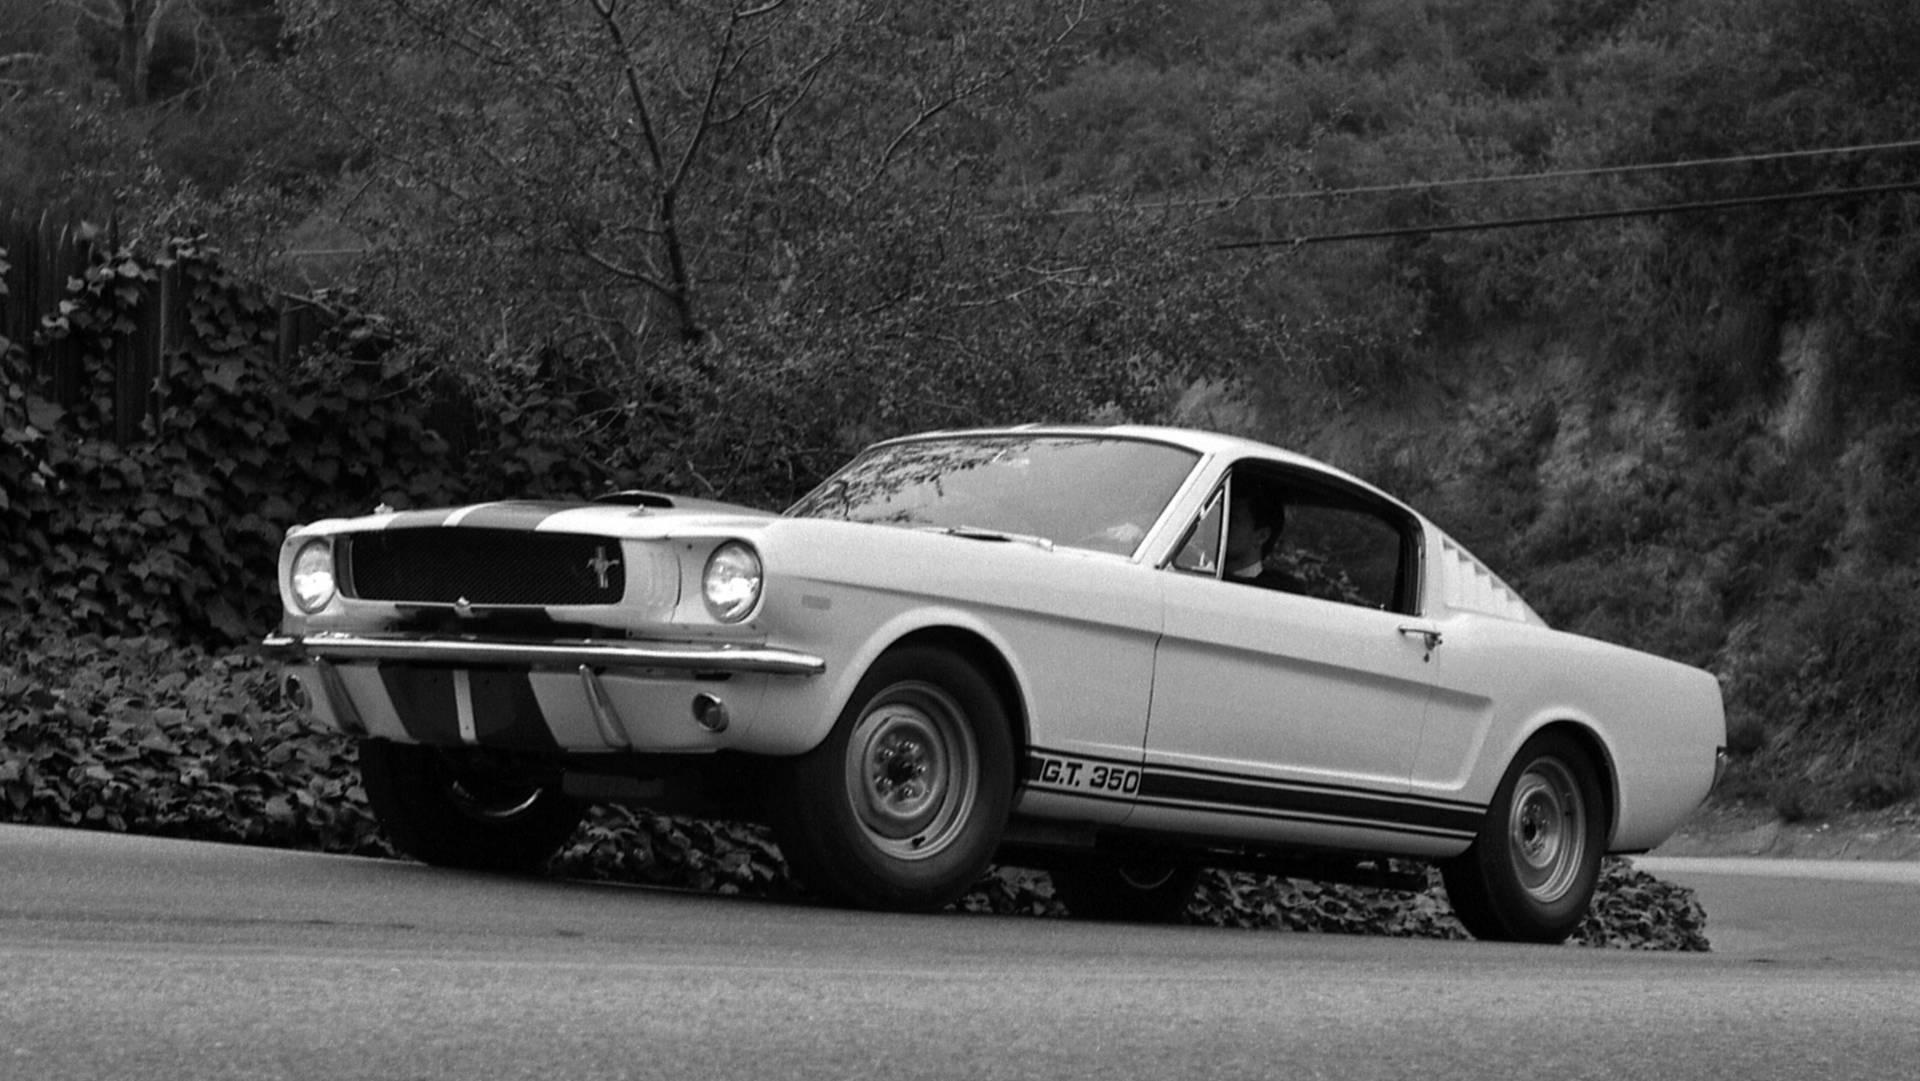 <p>The original Mustang wasn't much of a performance car, even by 1960's standards. But in 1965, Carroll Shelby created the first true go-fast variant in the form of the Shelby GT350. The original prototype didn't stray much from the factory formula; an extra 35 horses were added to the 289 cid V8, and steering speed was improved by 14 percent. Shelby rolled out a limited run of 513 Shelby Mustangs in 1965, but it wasn't until 1966 that the performance-oriented pony cars got the recognition they deserved.</p>